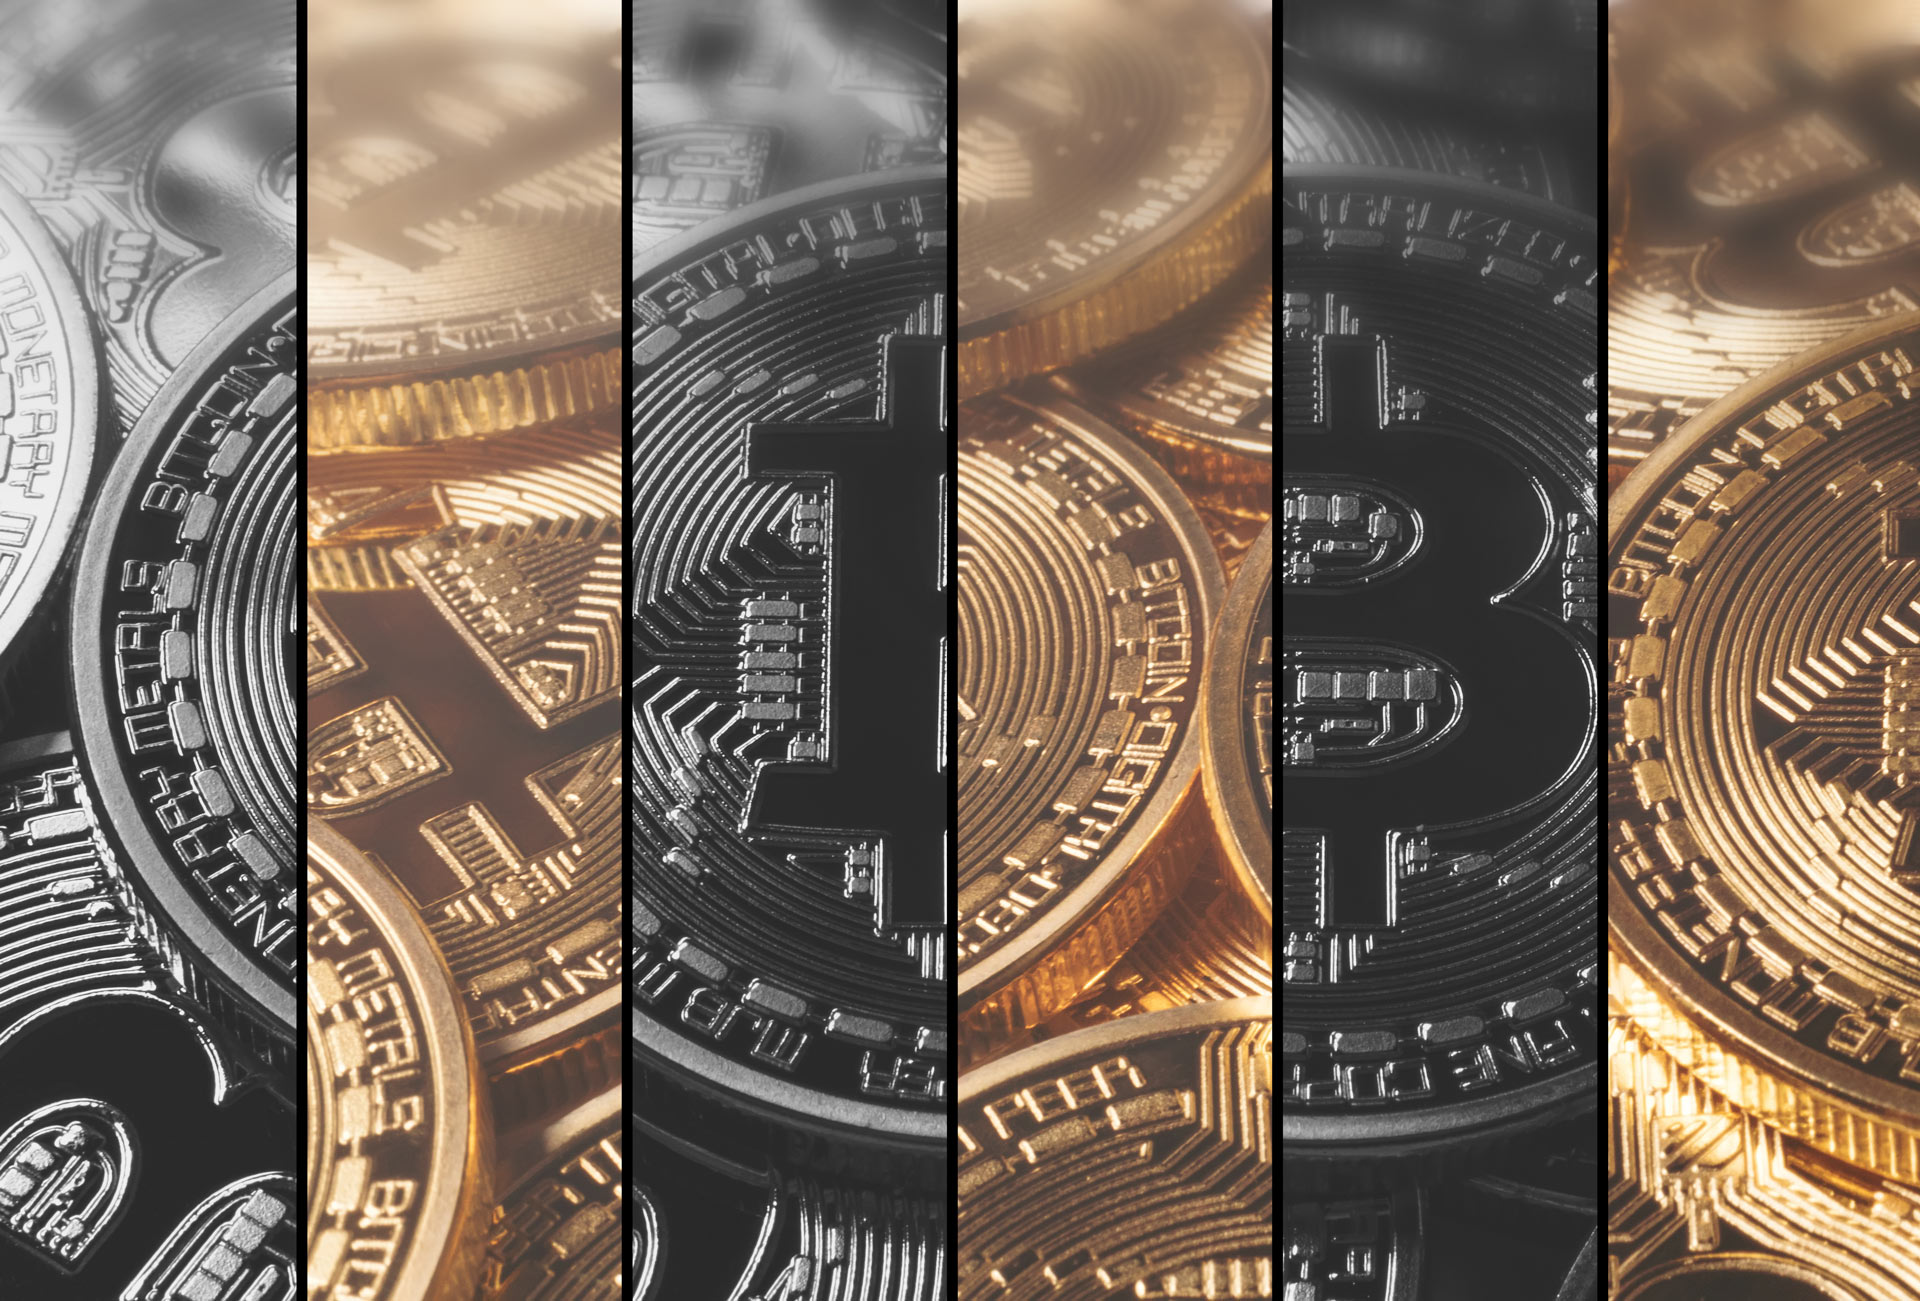 QuadrigaCX timeline: Every twist and turn in the bizarre crypto scandal